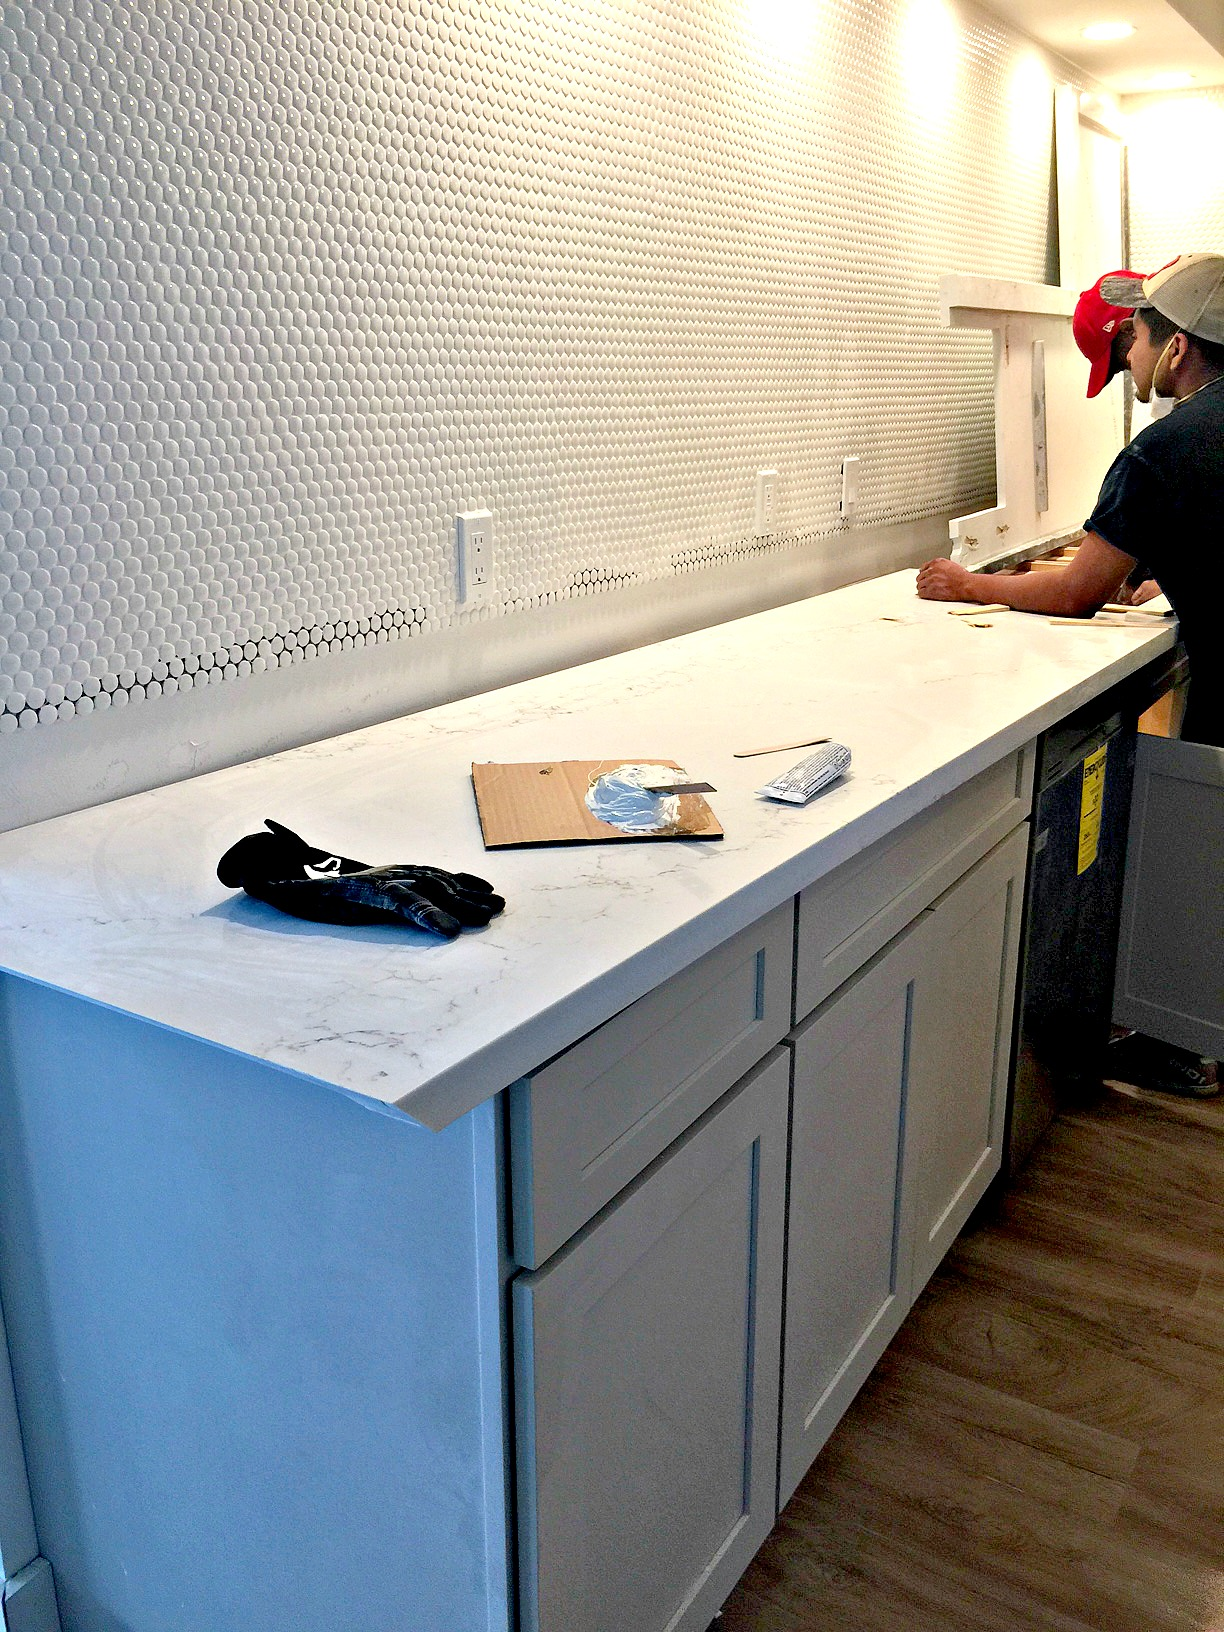 Remodel Project – Home Stretch!